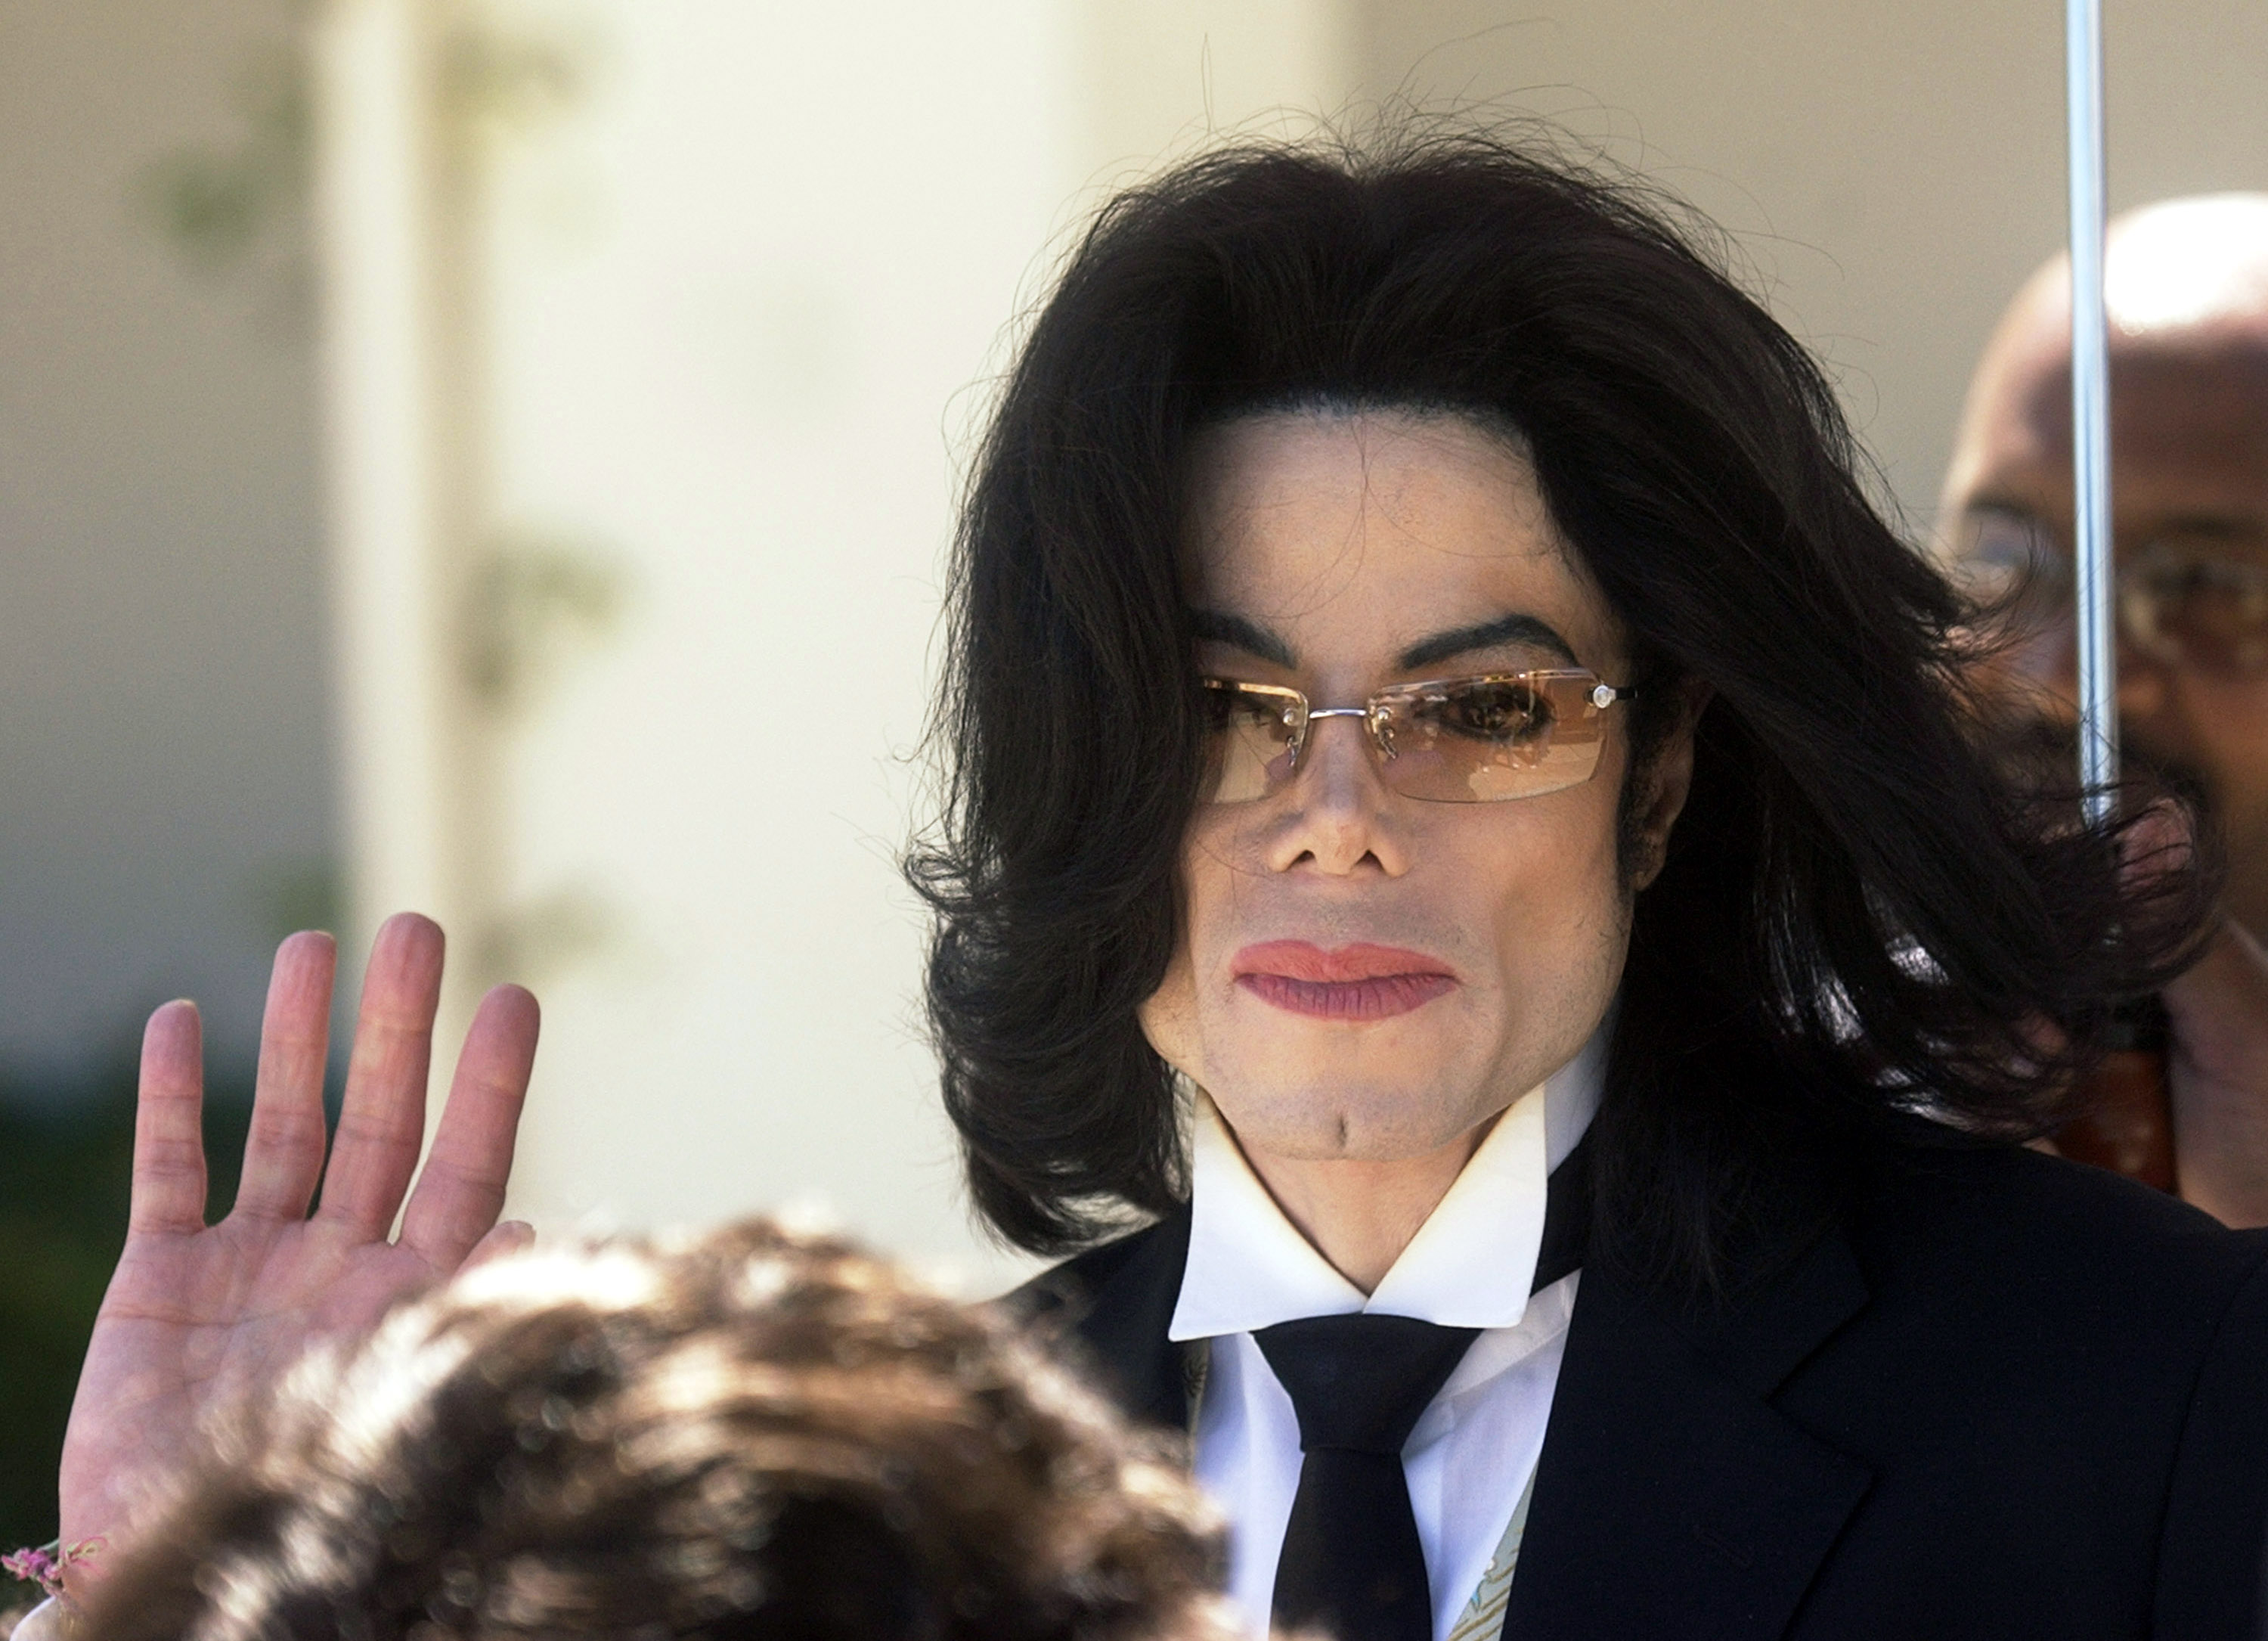 Did michael jackson have sex #4